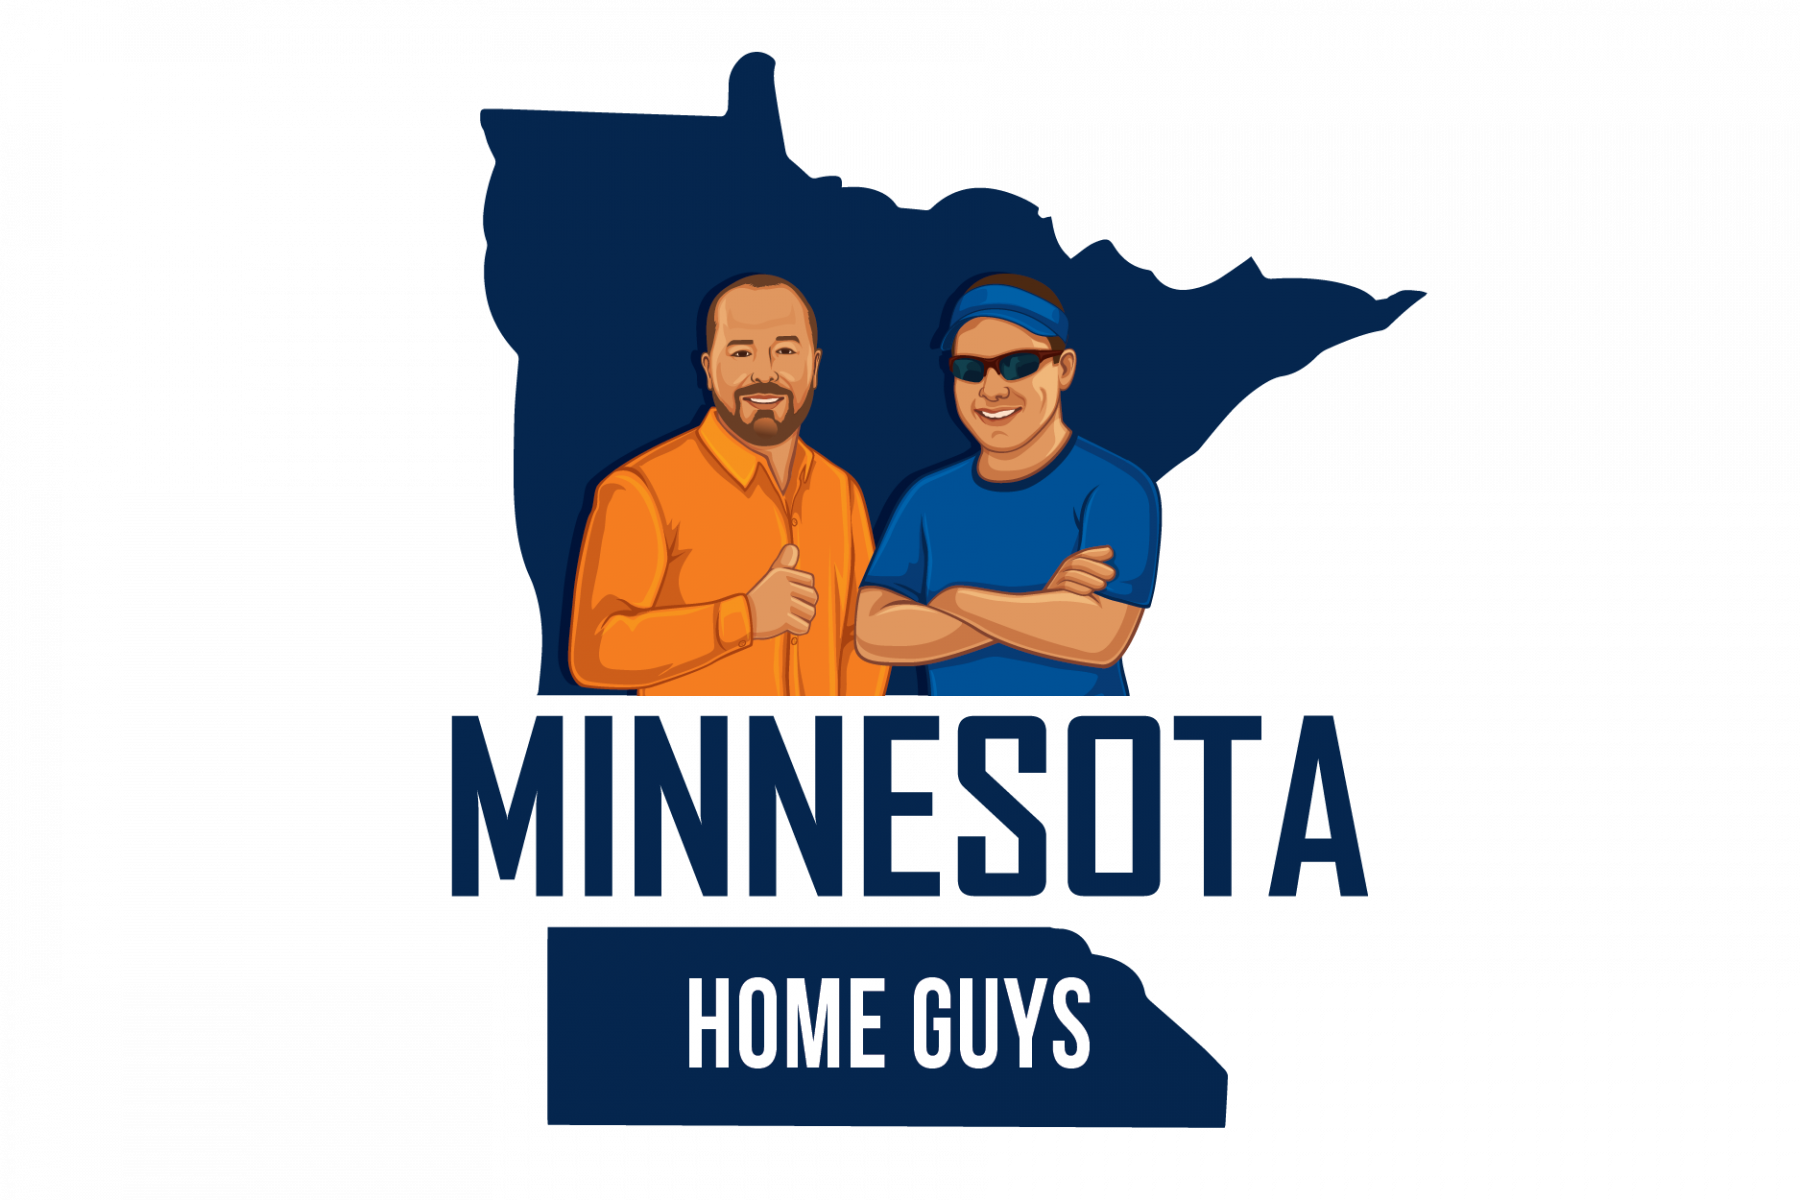 Minnesota Home Guys- Sell your house Fast as-is for CASH logo